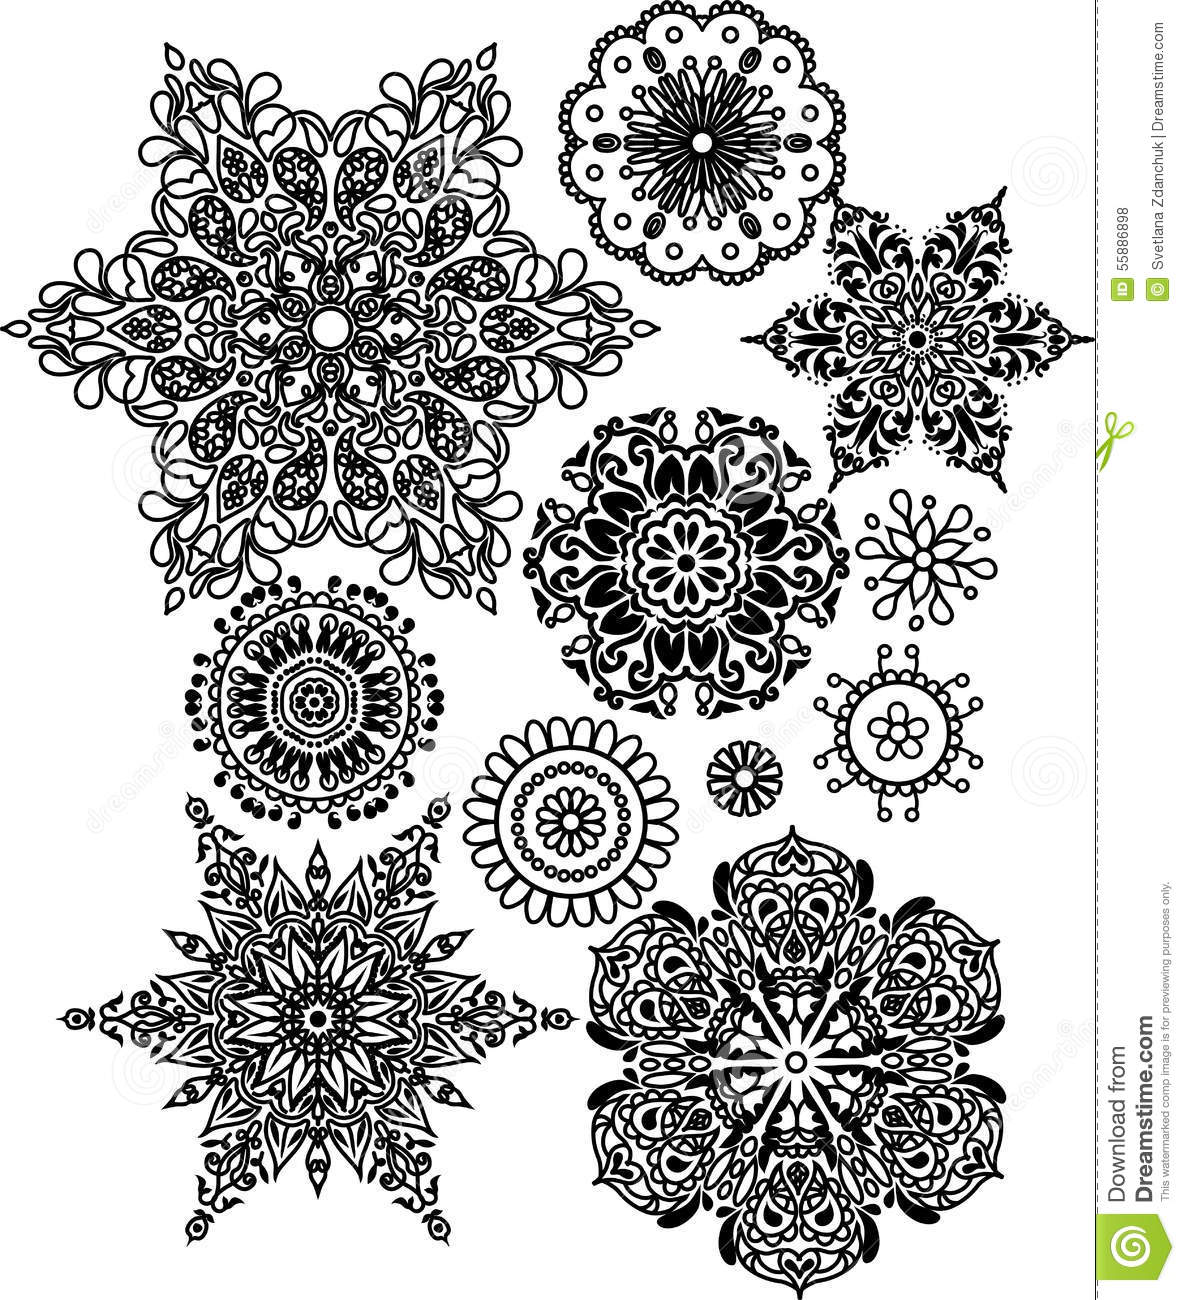 Lacy arabesque designs stock vector image 55886898 for Arabesque style decoration